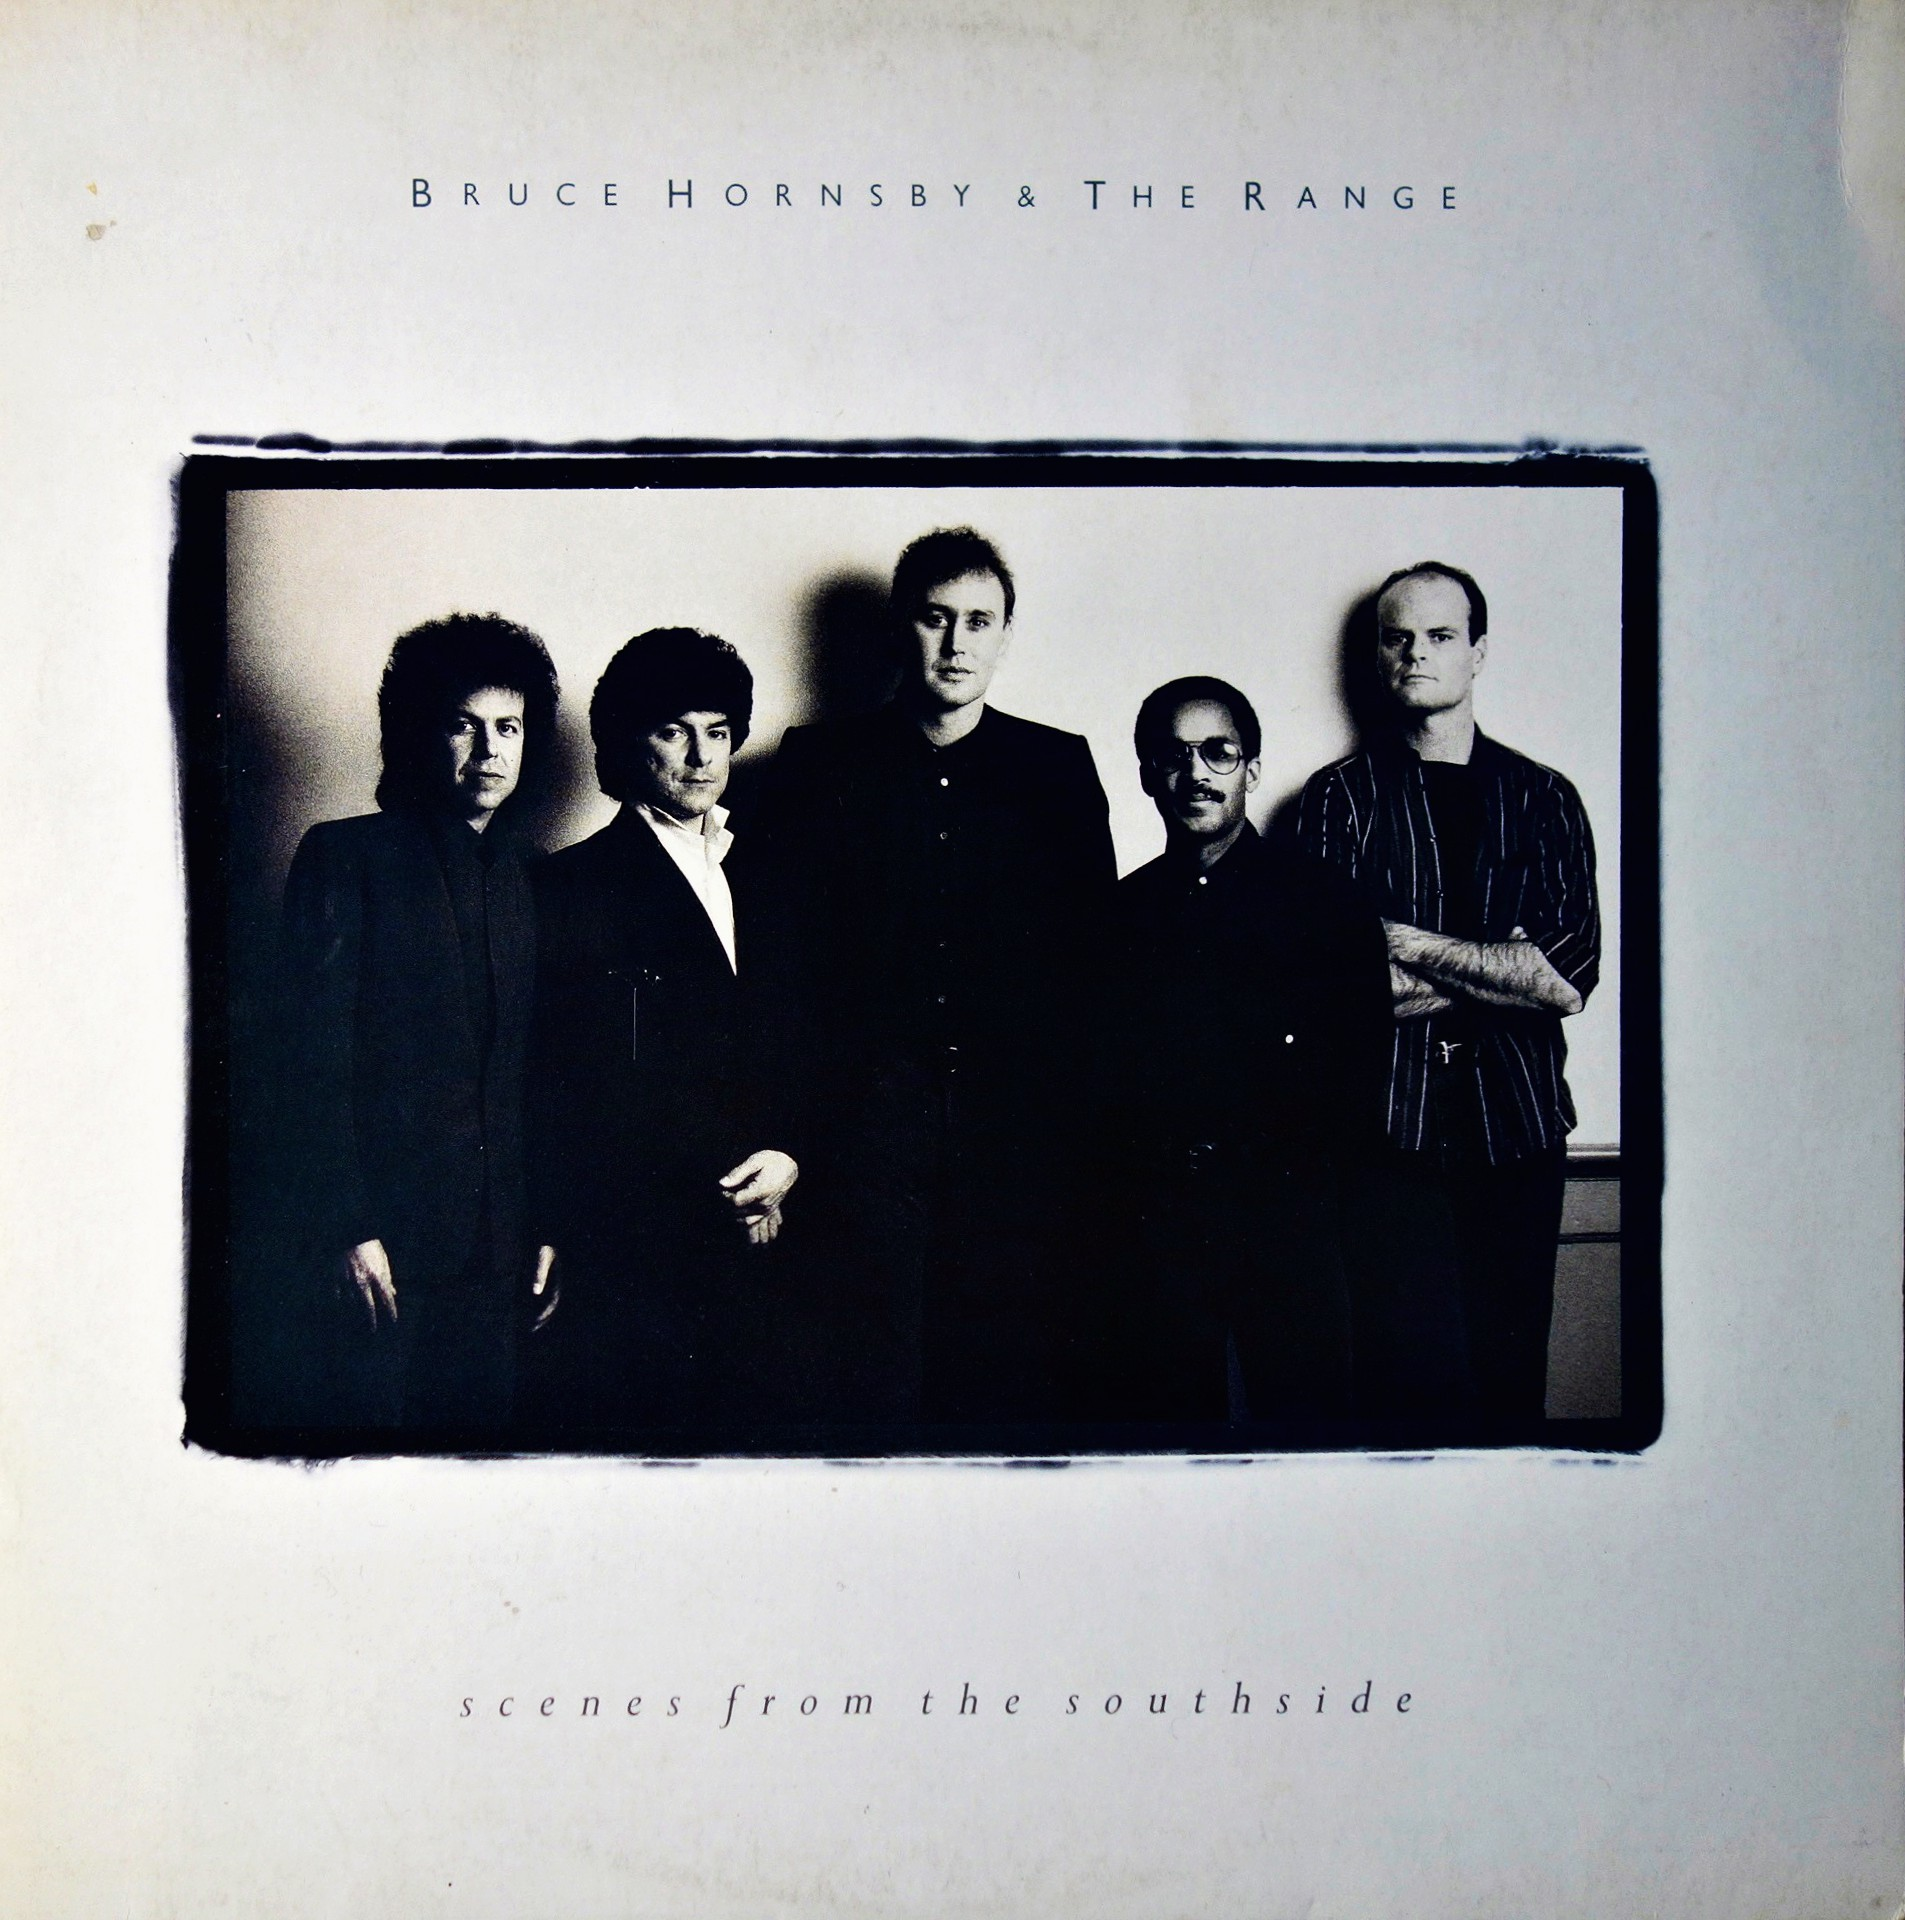 LP Bruce Hornsby & The Range ‎– Scenes From The Southside